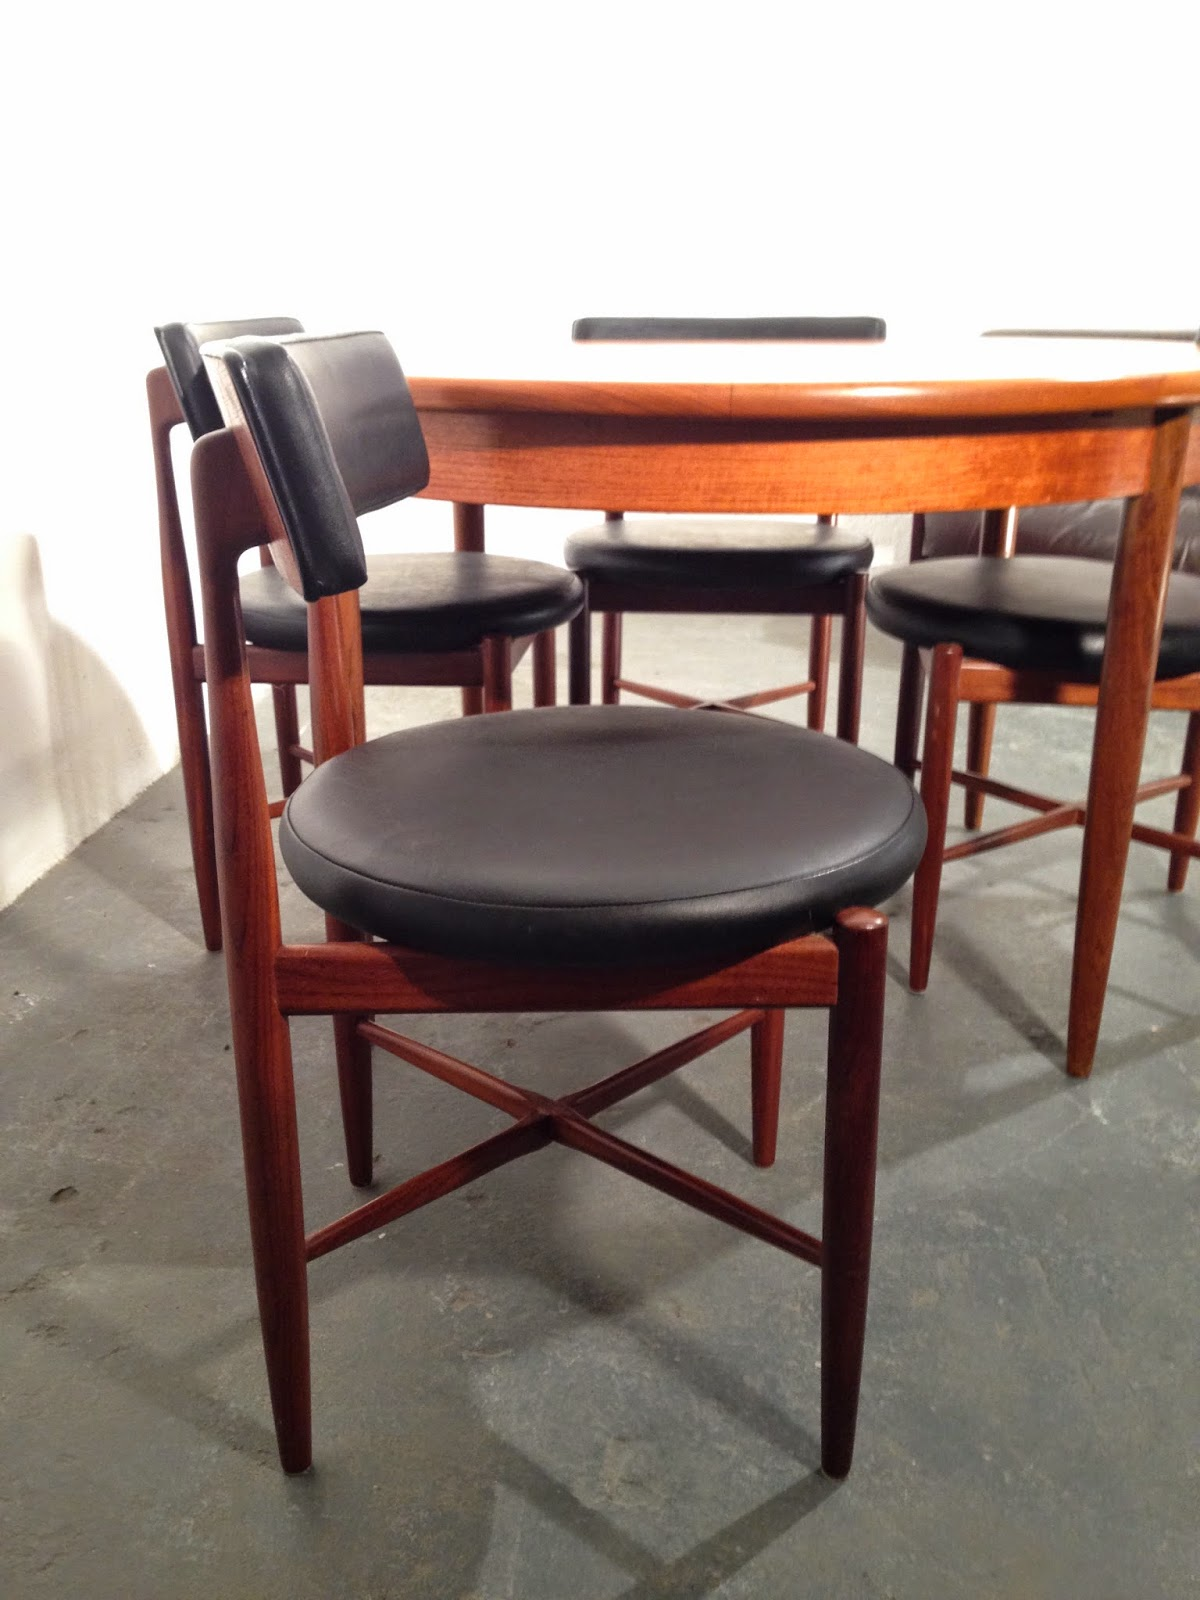 retro dining chairs ireland charcoal banquet chair covers ocd vintage furniture november 2014